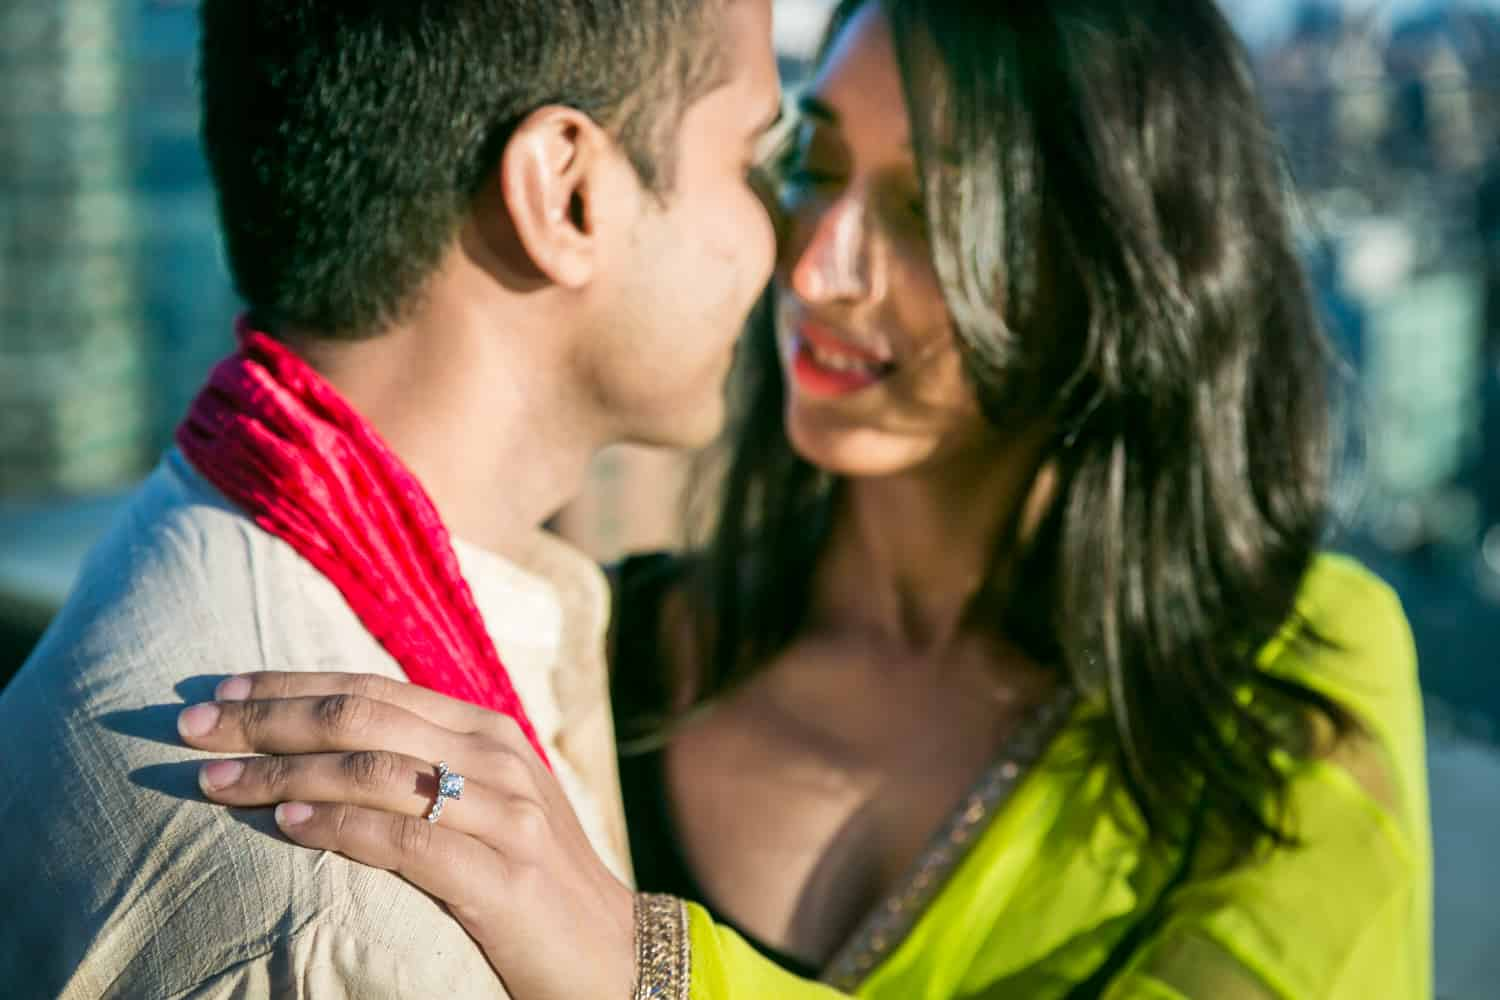 Woman's hand on man's shoulder wearing engagement ring and traditional Indian attire